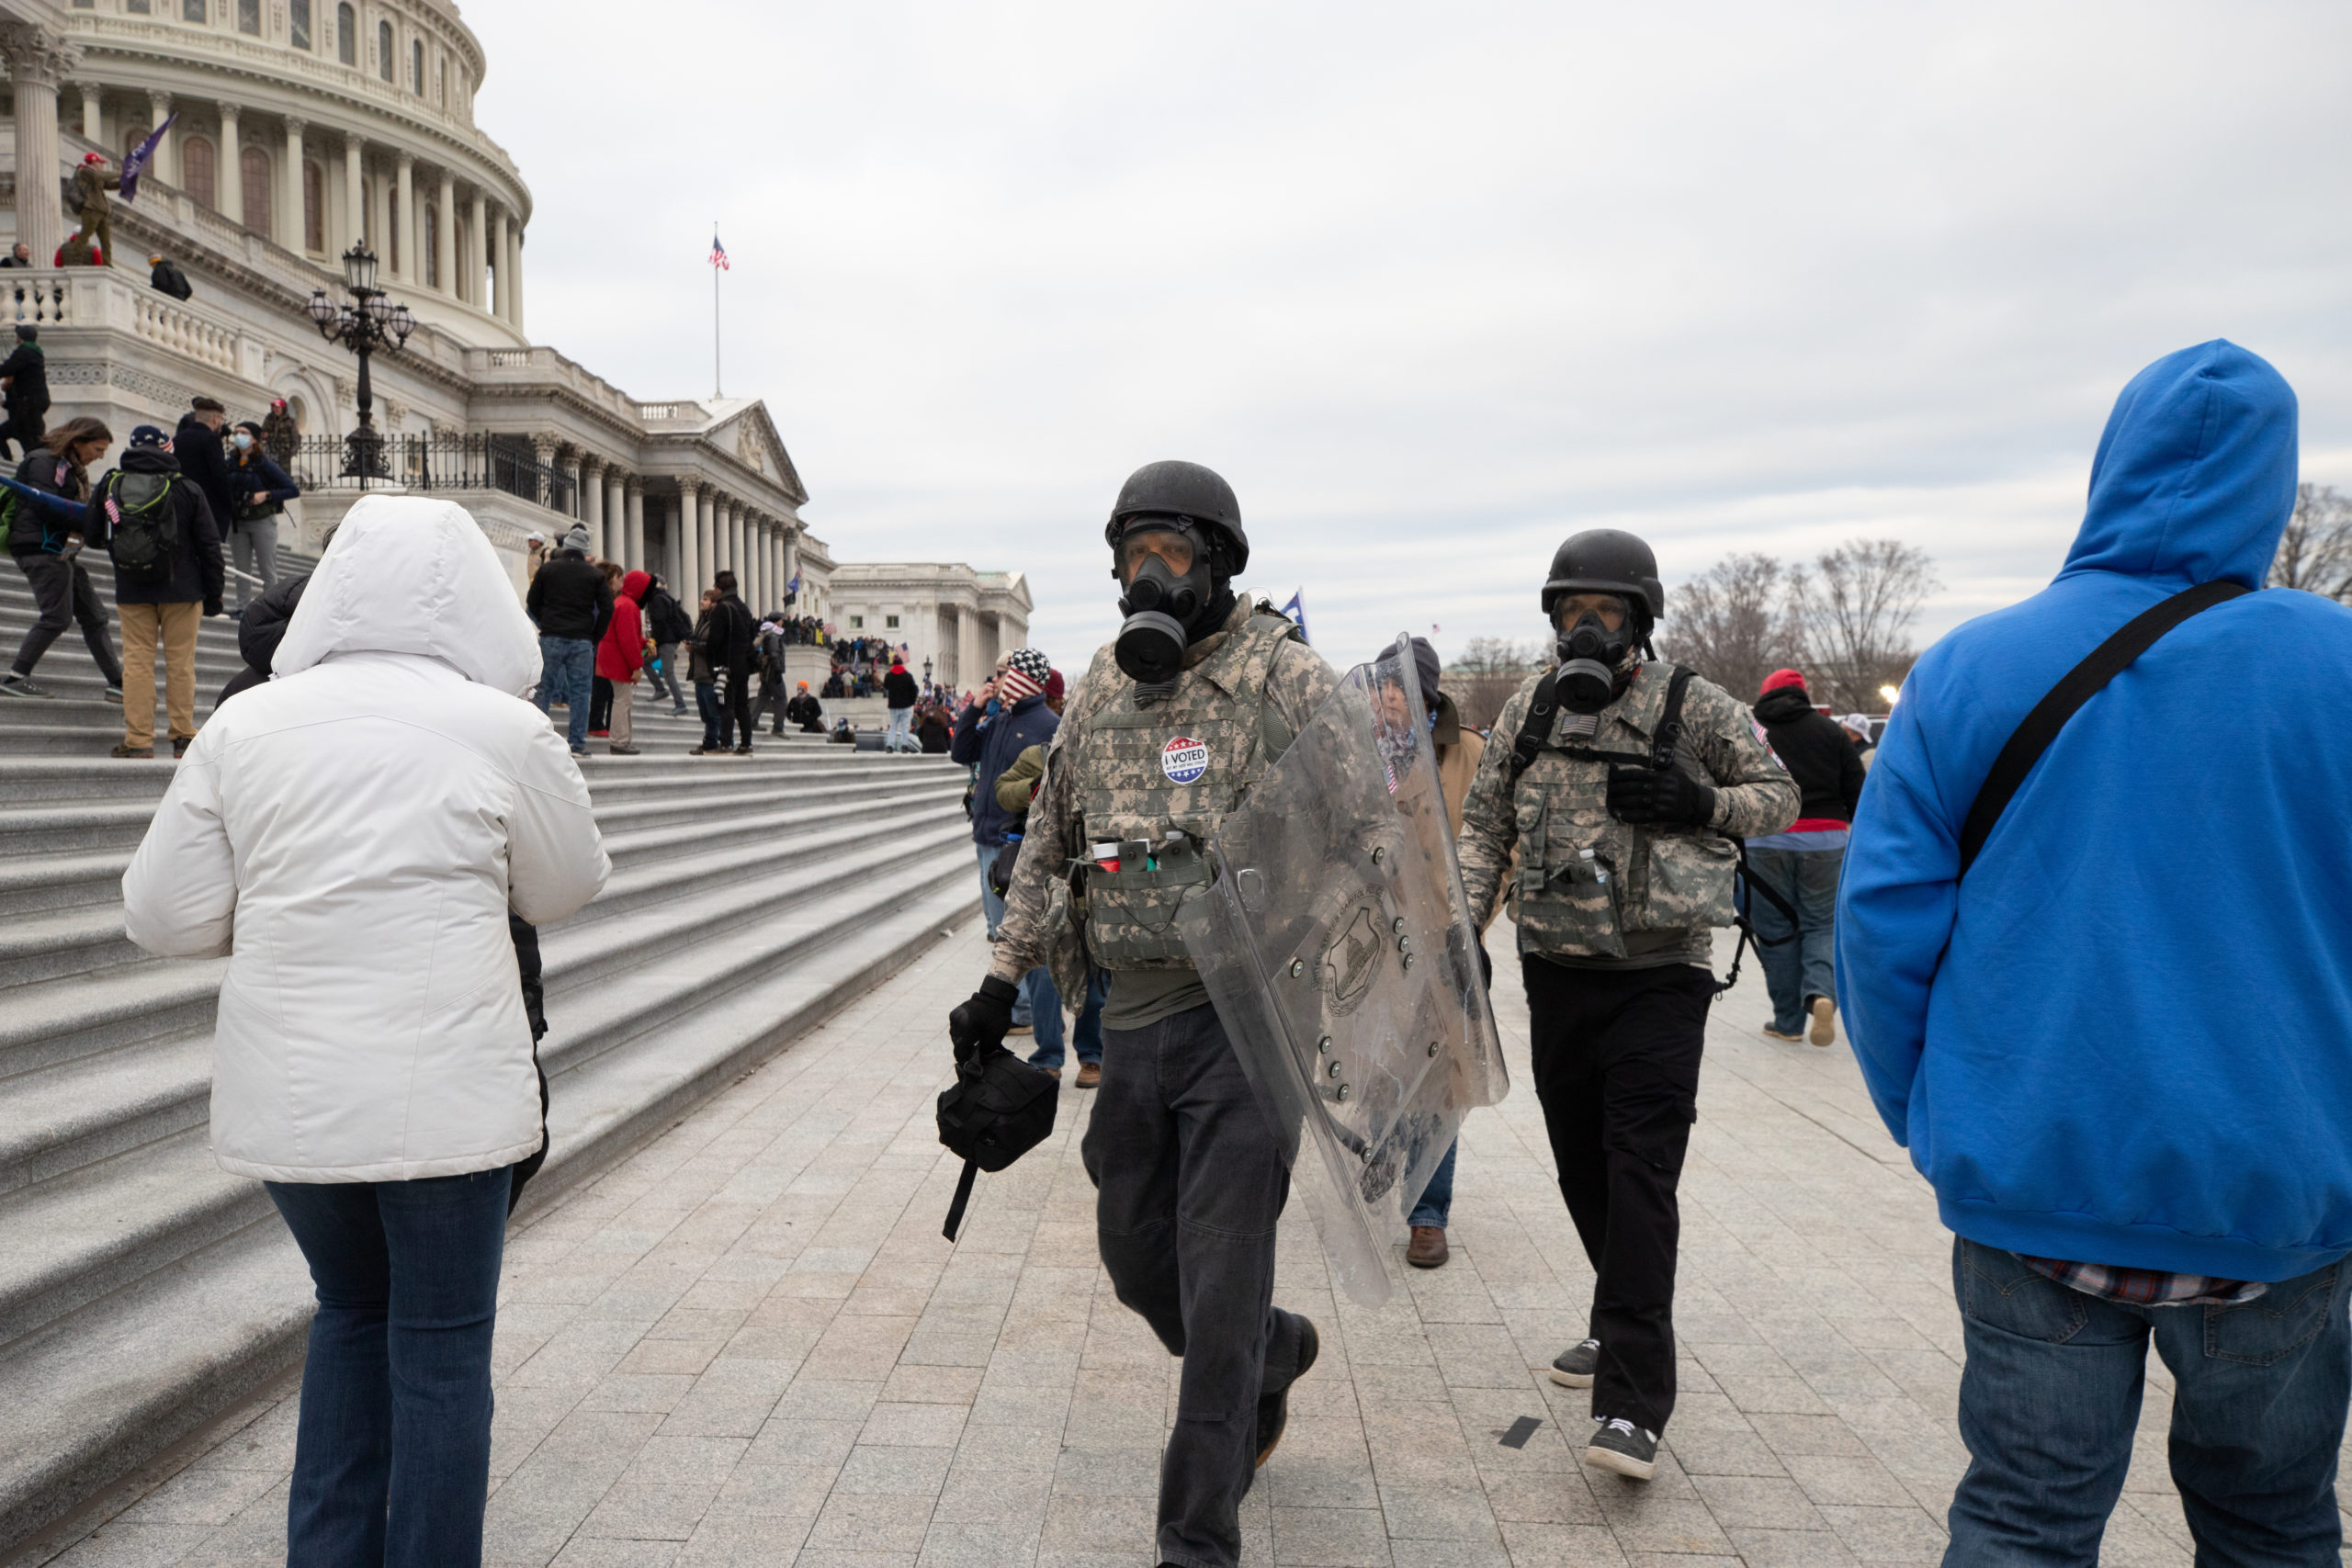 A protester somehow obtained a Capitol Police riot shield near the Capitol Building in Washington, D.C. on Jan. 6, 2021. (Kaylee Greenlee - Daily Caller News Foundation)